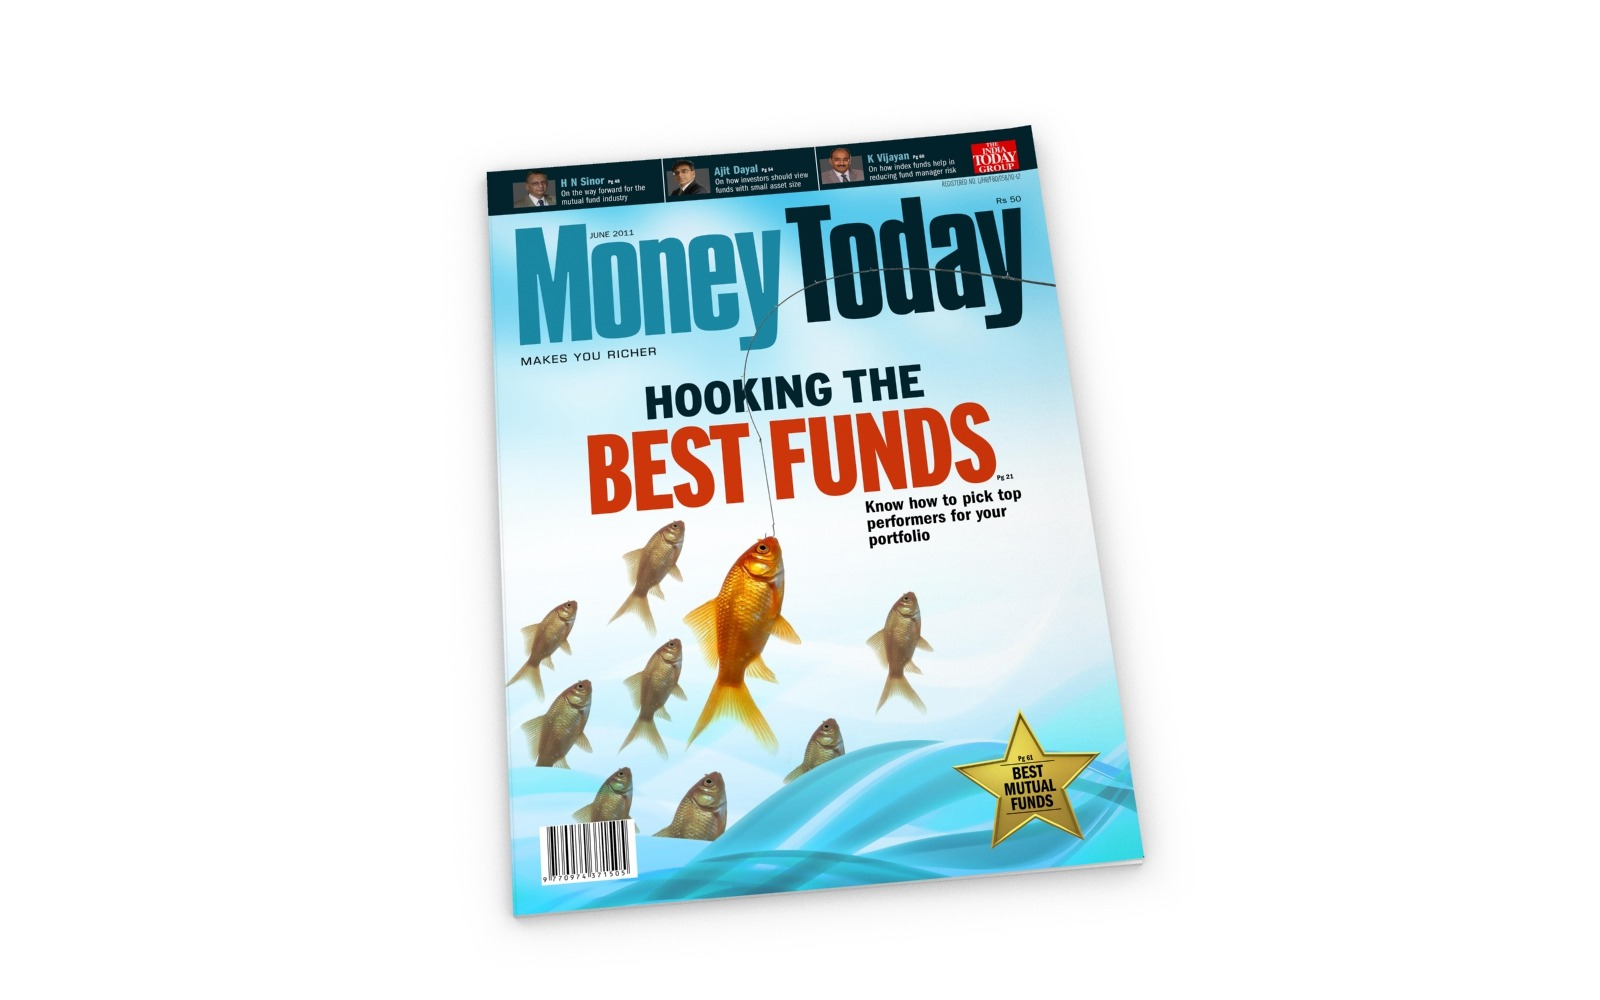 Magazine Cover page design for India Today Group's Money Today, a Personal Finance magazine